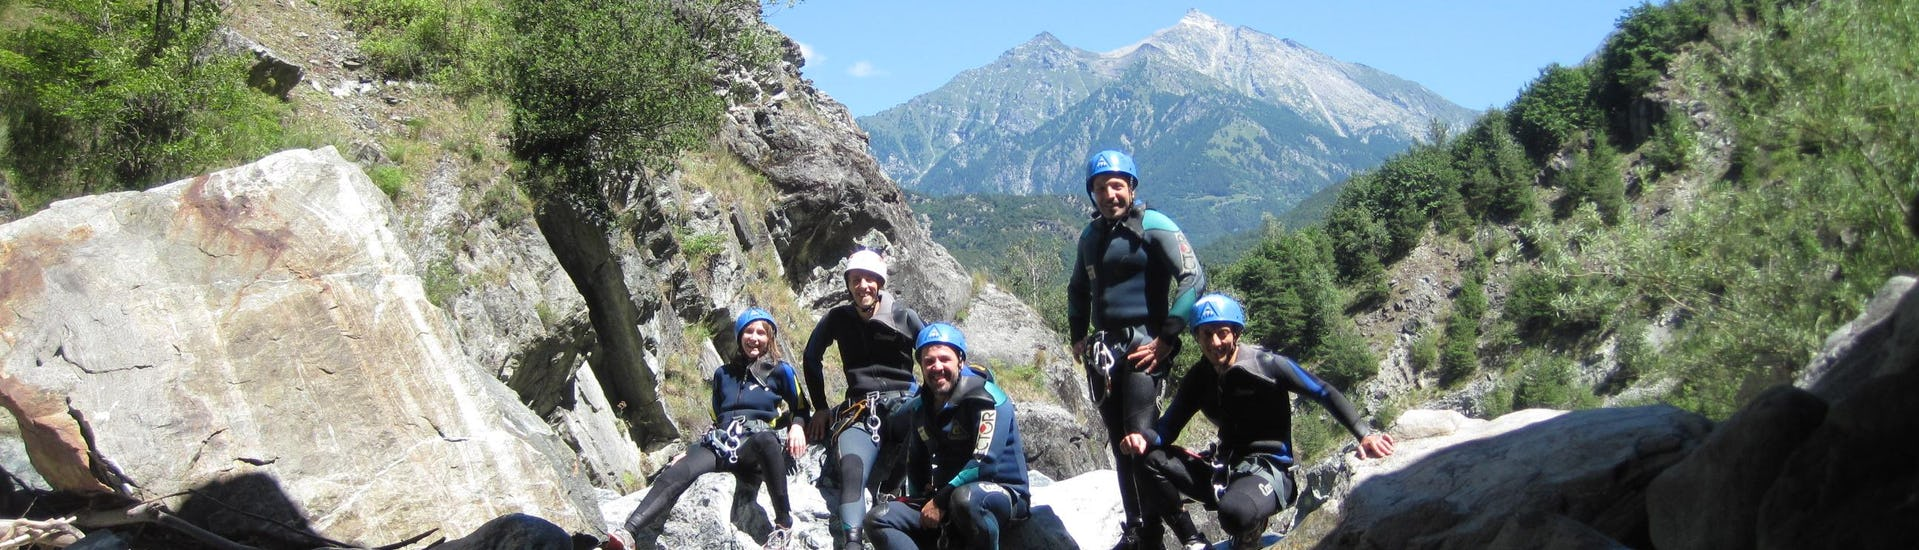 Canyoning in the Chalamy - Test Yourself, Sporting Spirit